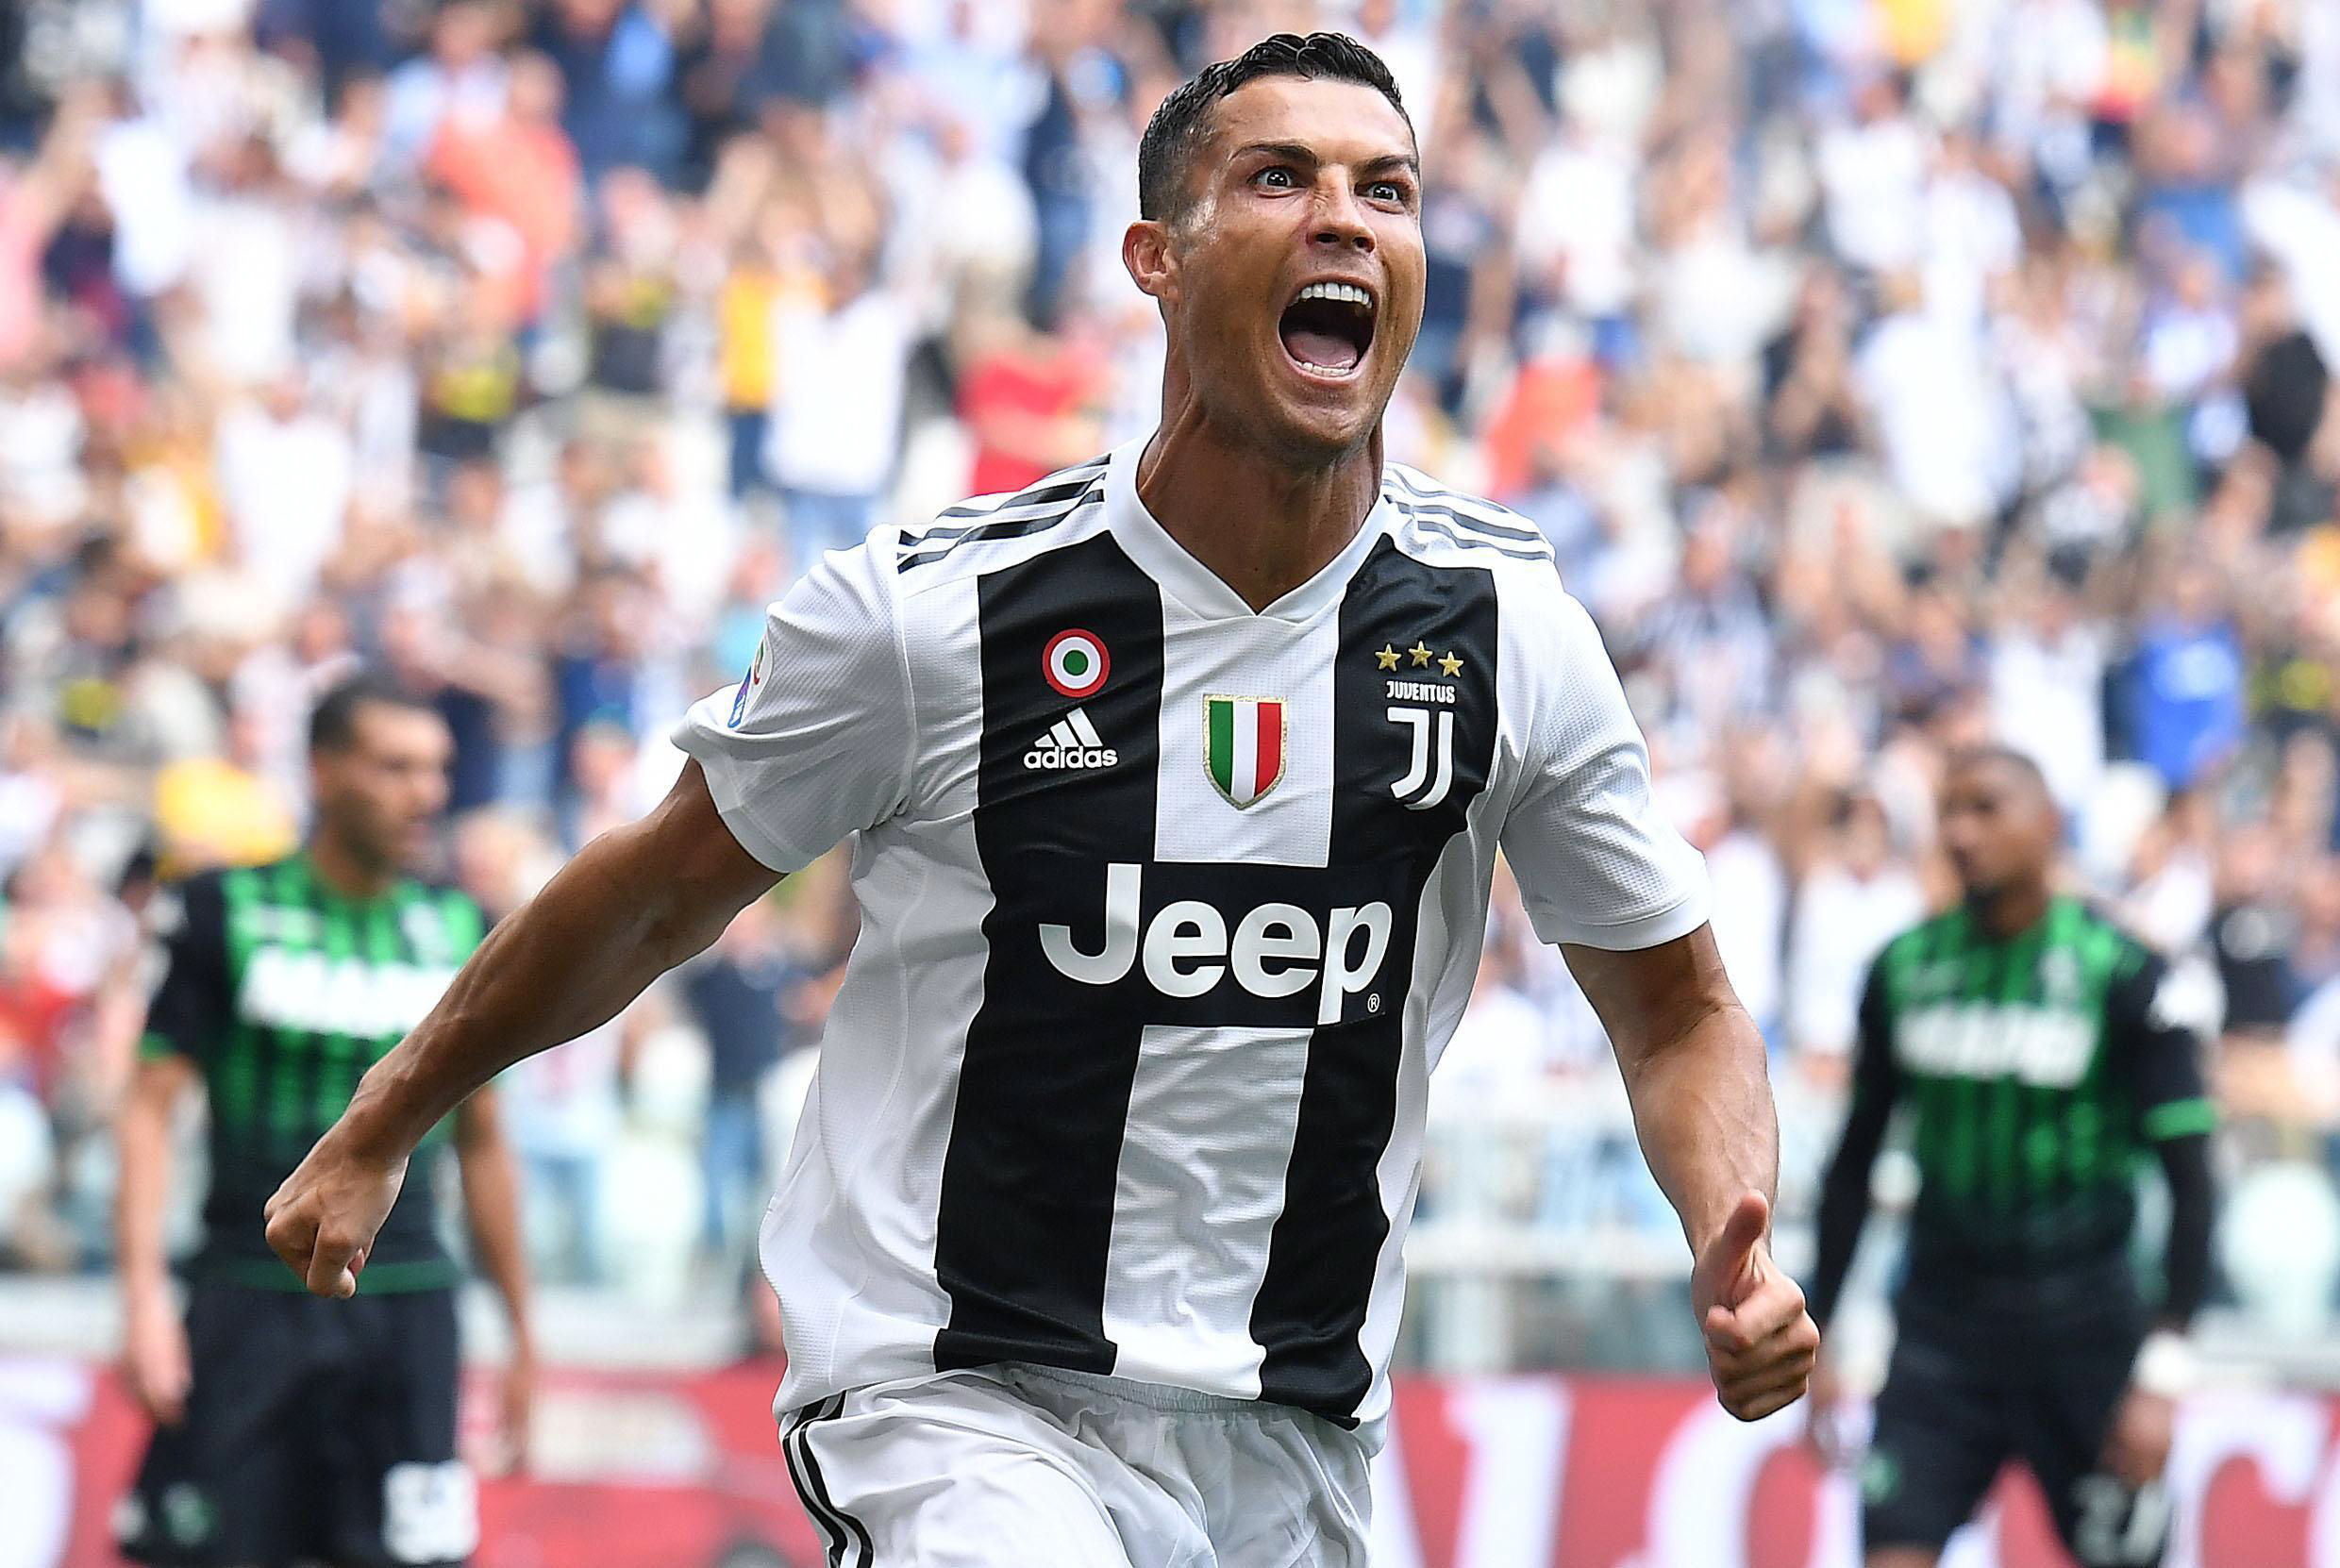 Ronaldo has sights on Champions League after drought breaker